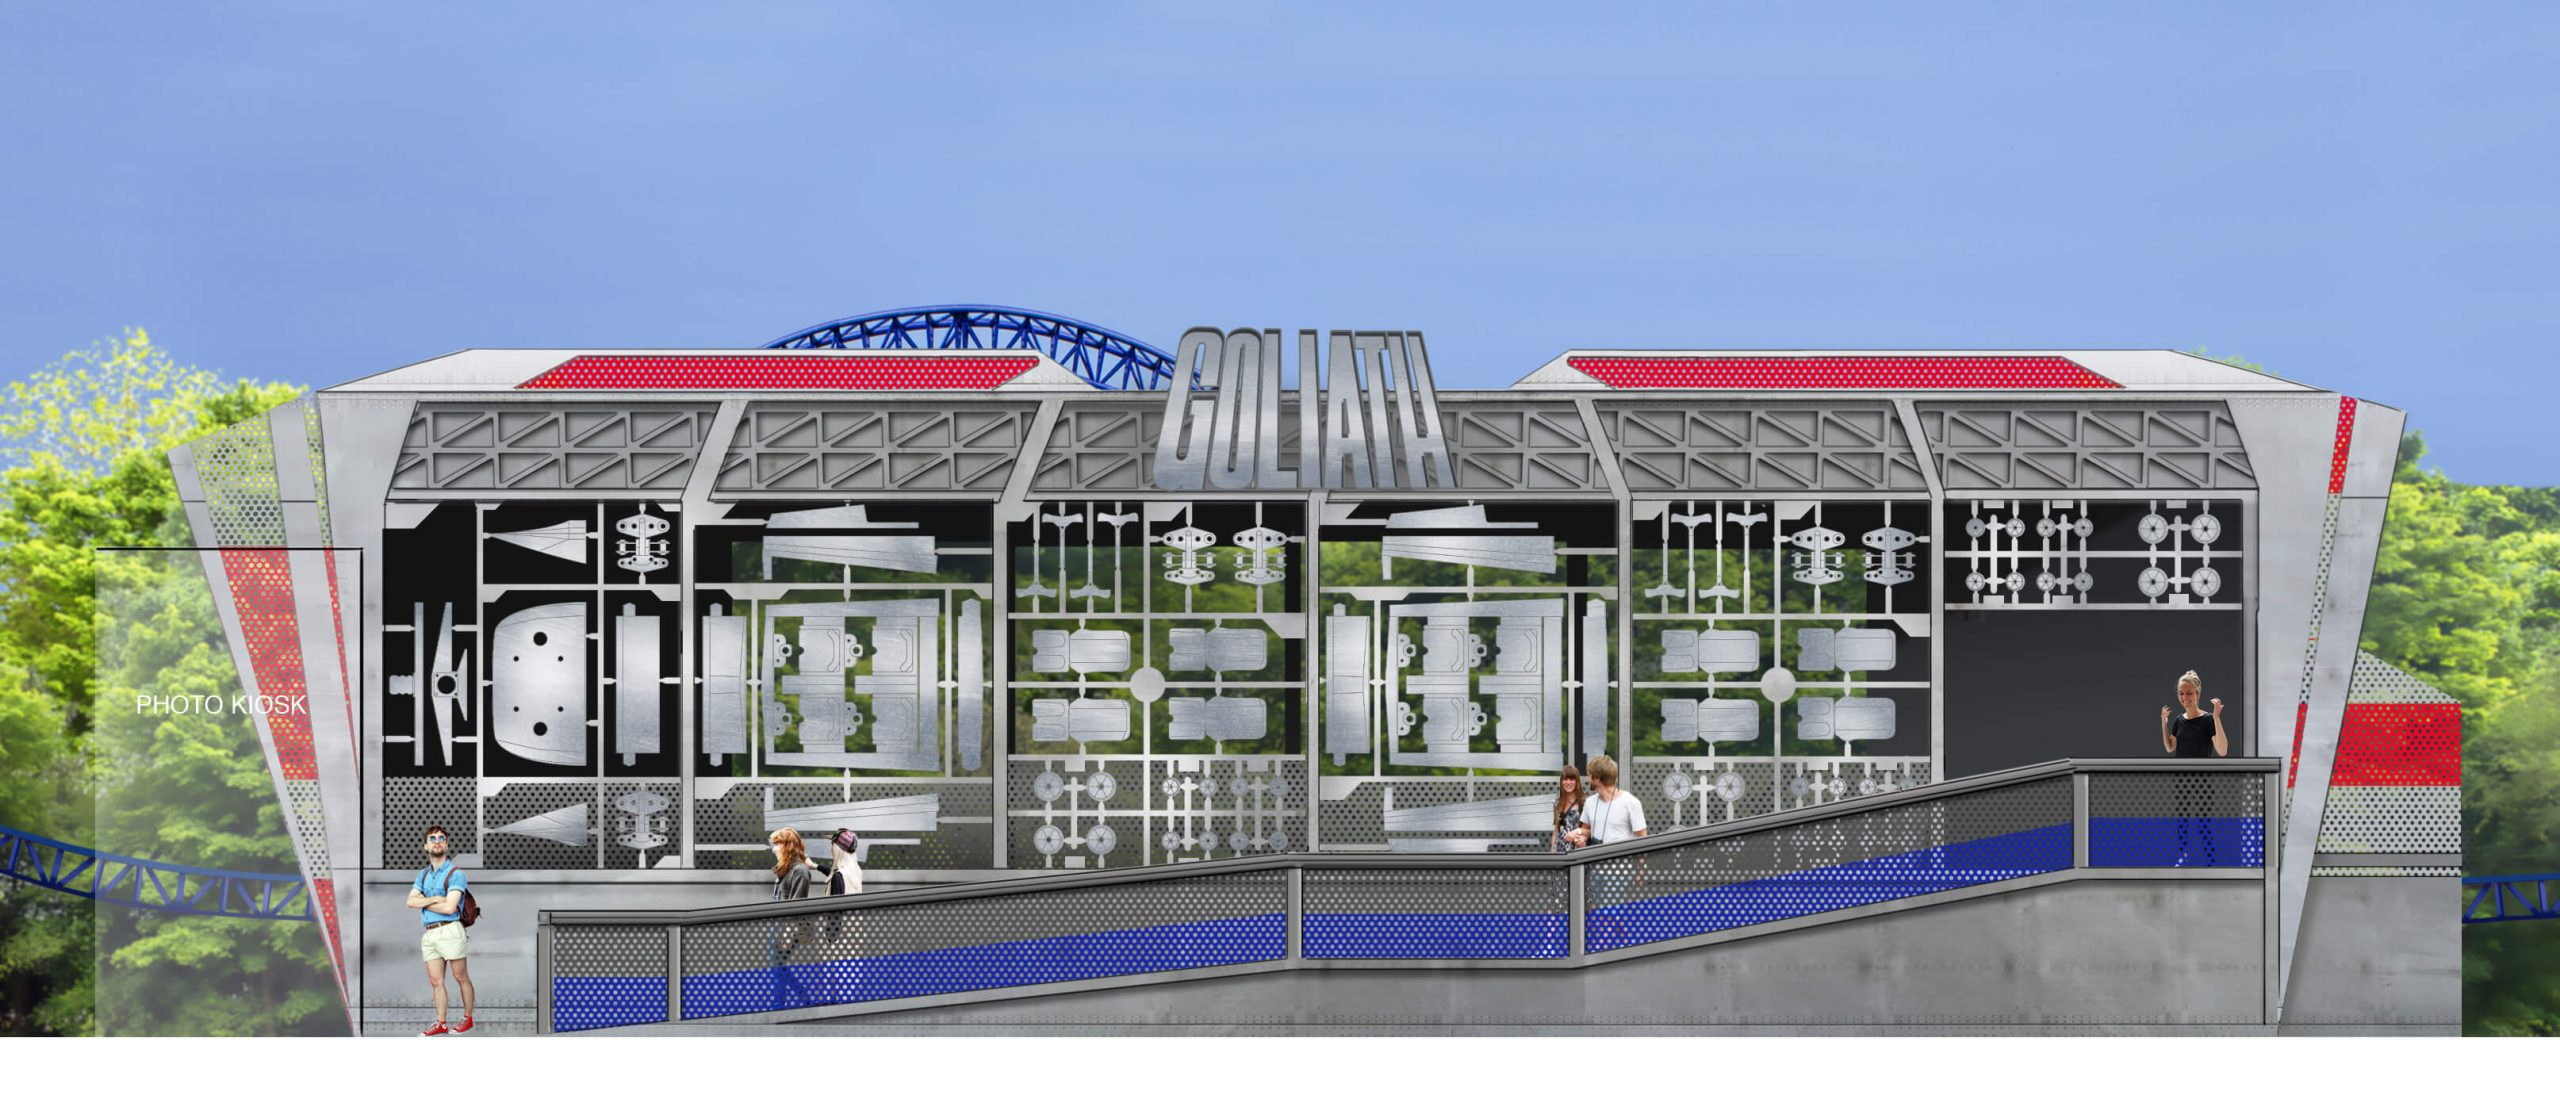 Design of Goliath station at Walibi Holland